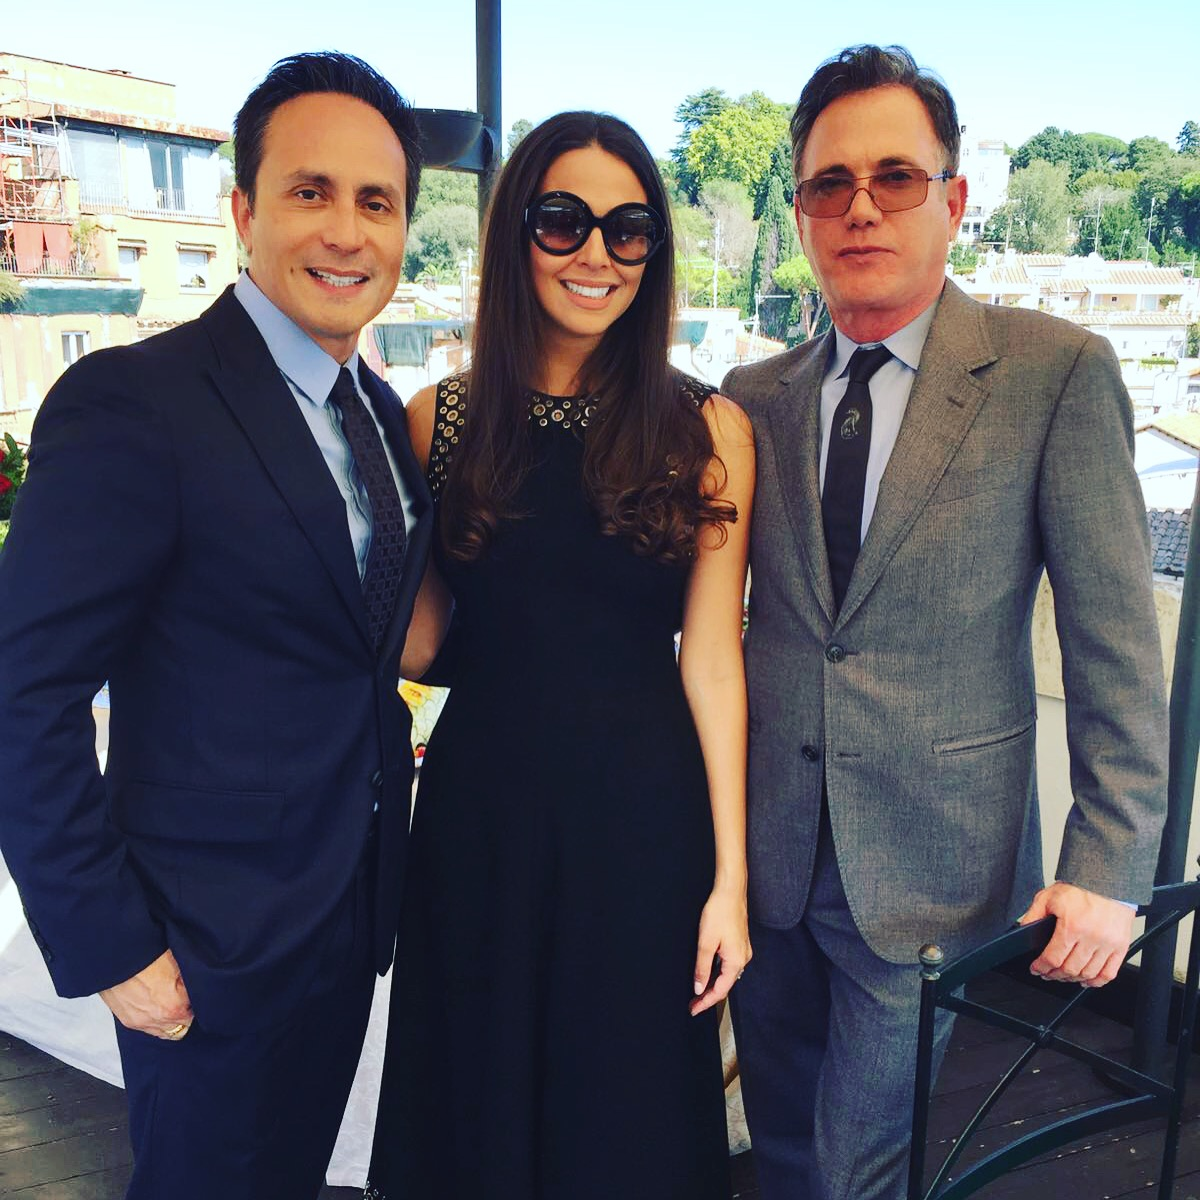 Carolina Alvarez-Mathies with Y.ES Contemporary's Council Members Mario Cader-Frech and Robert S. Wennett